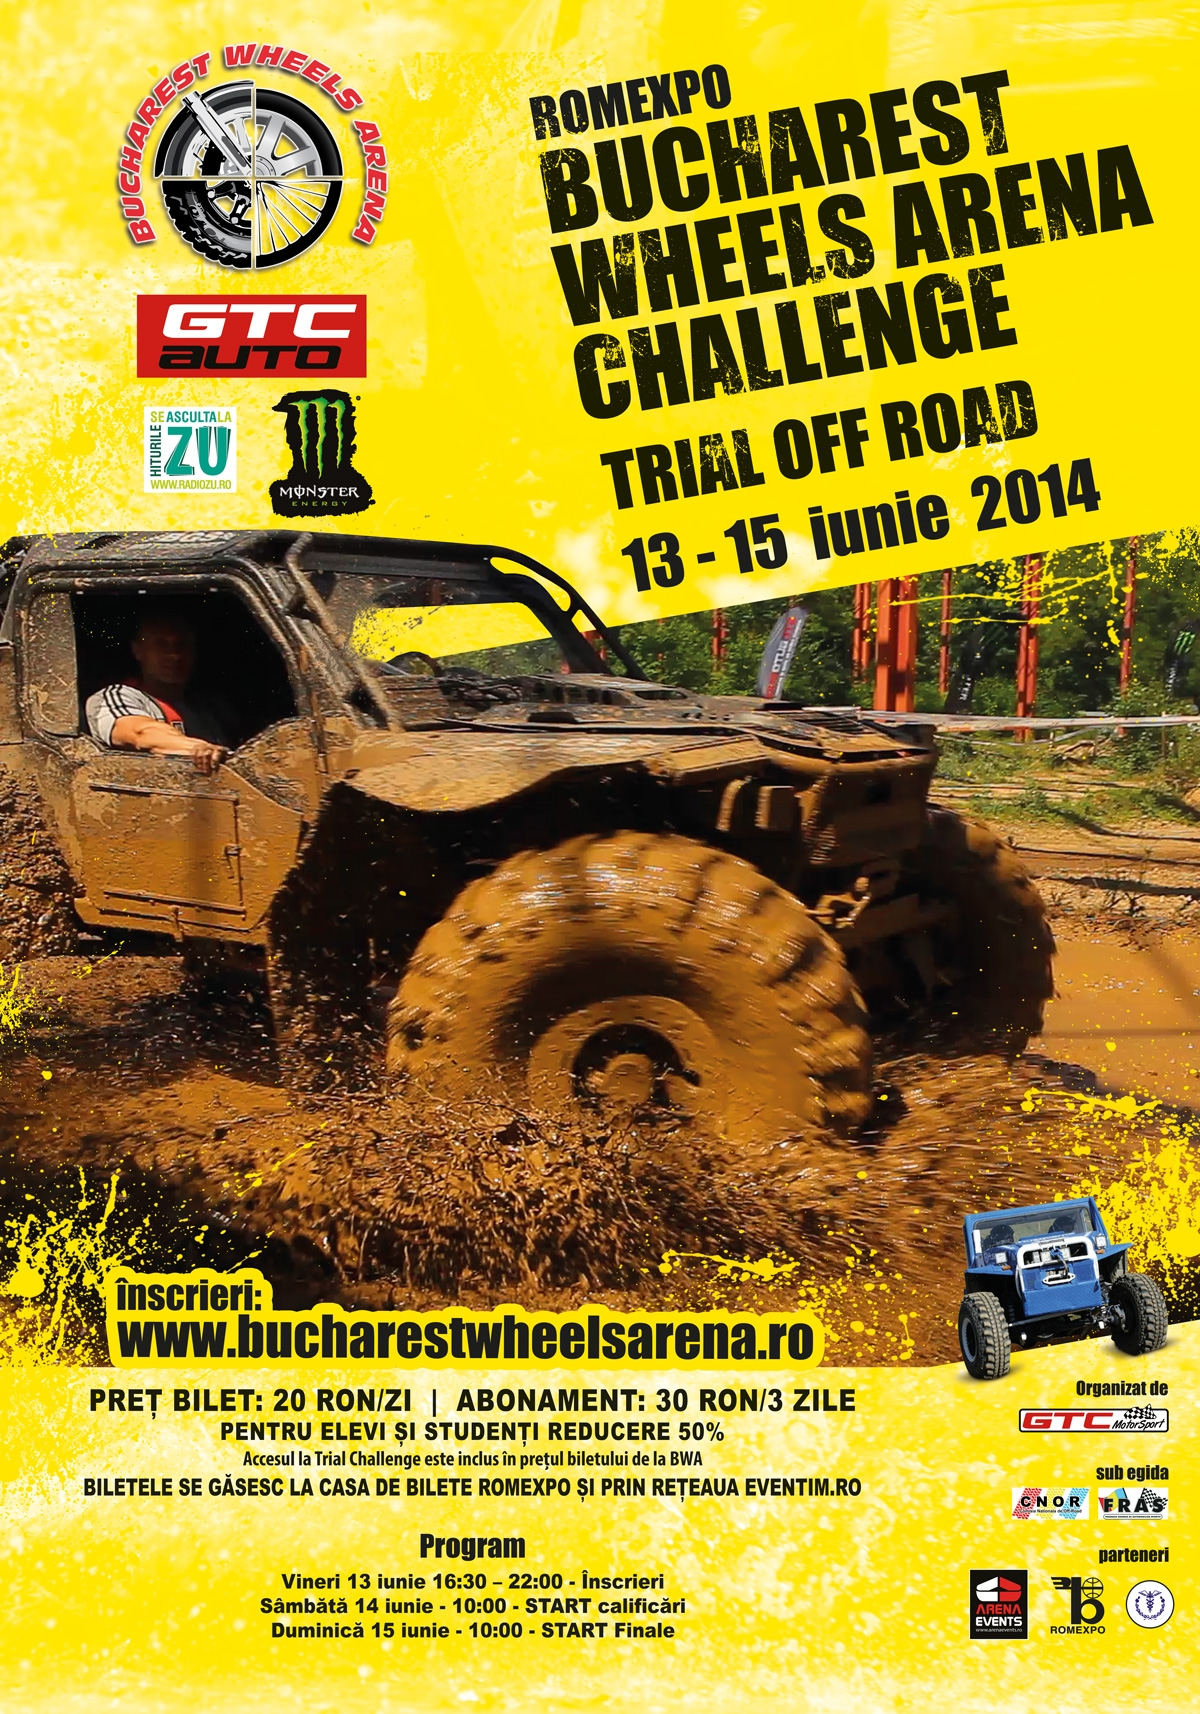 Monstri 4x4 dezlantuiti in inima Bucurestiului!